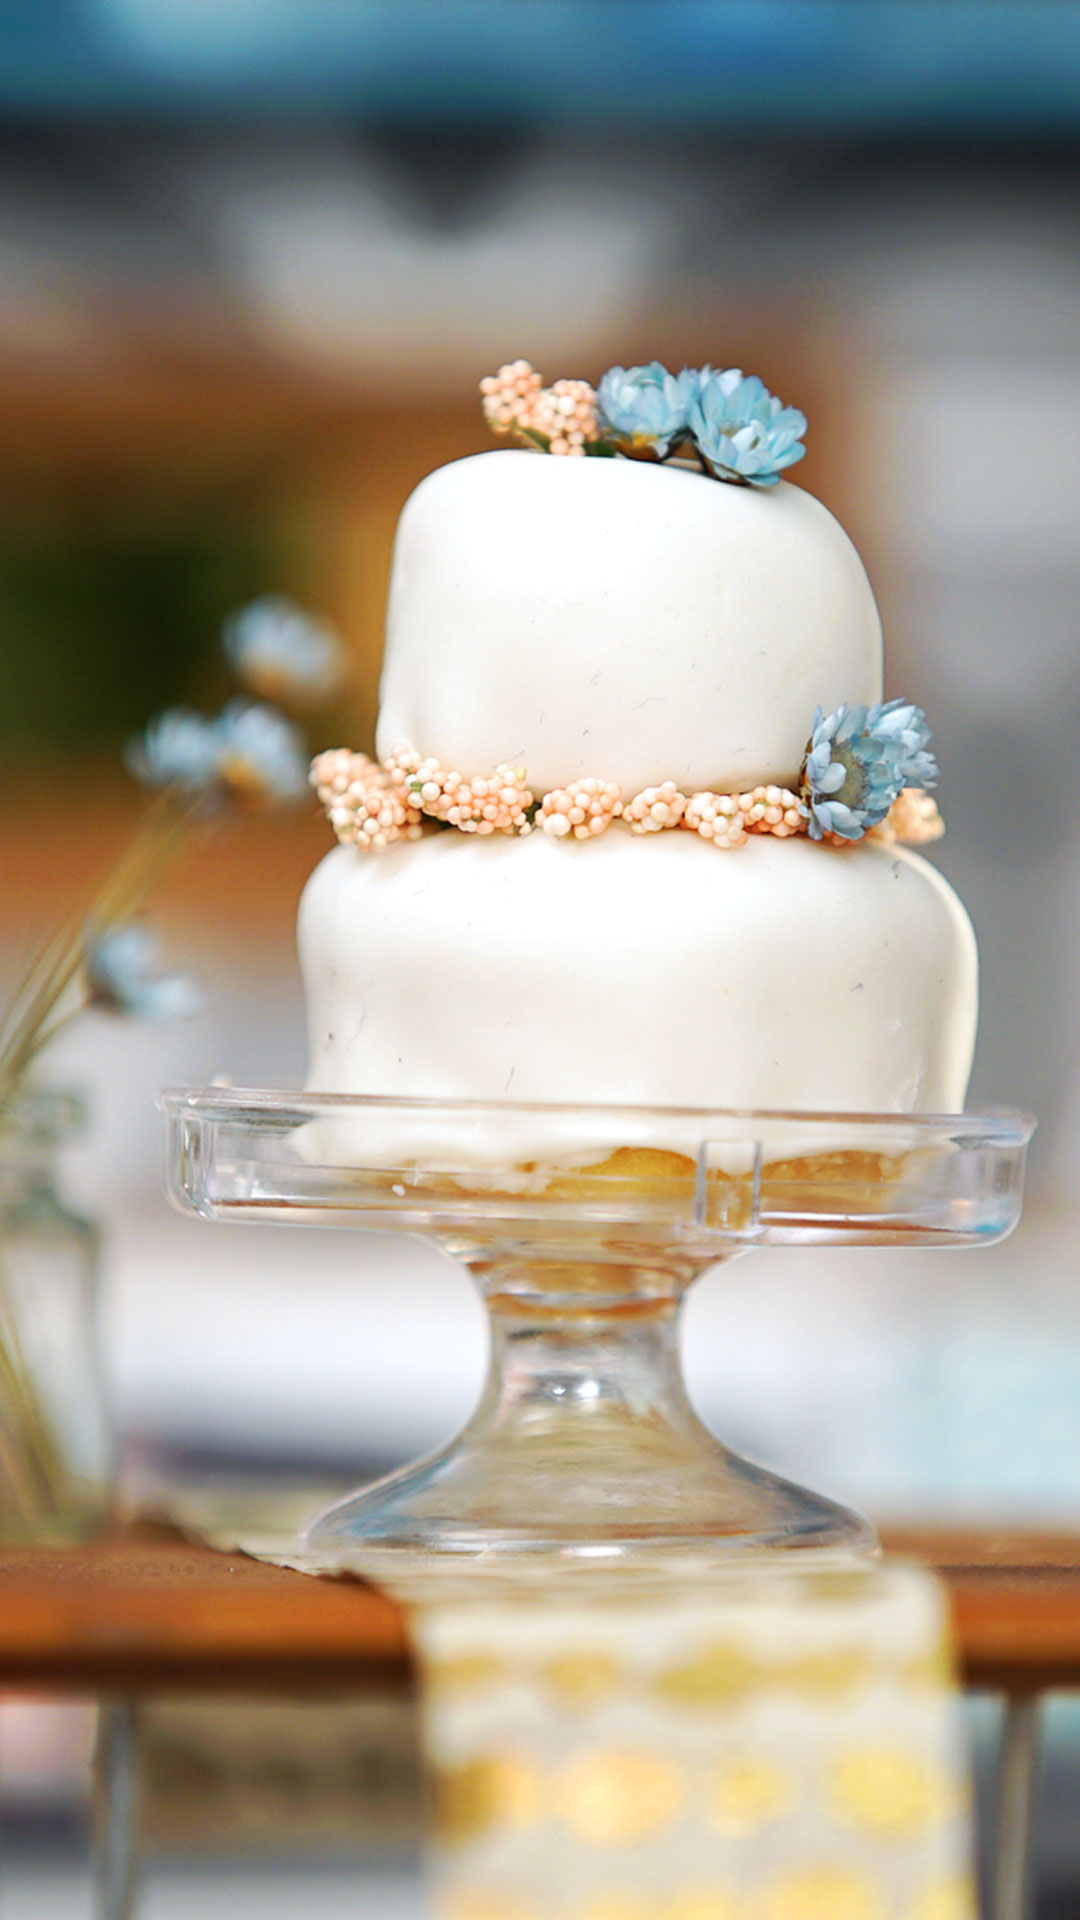 Tiny Wedding Cake Tiny Kitchen Tastemade